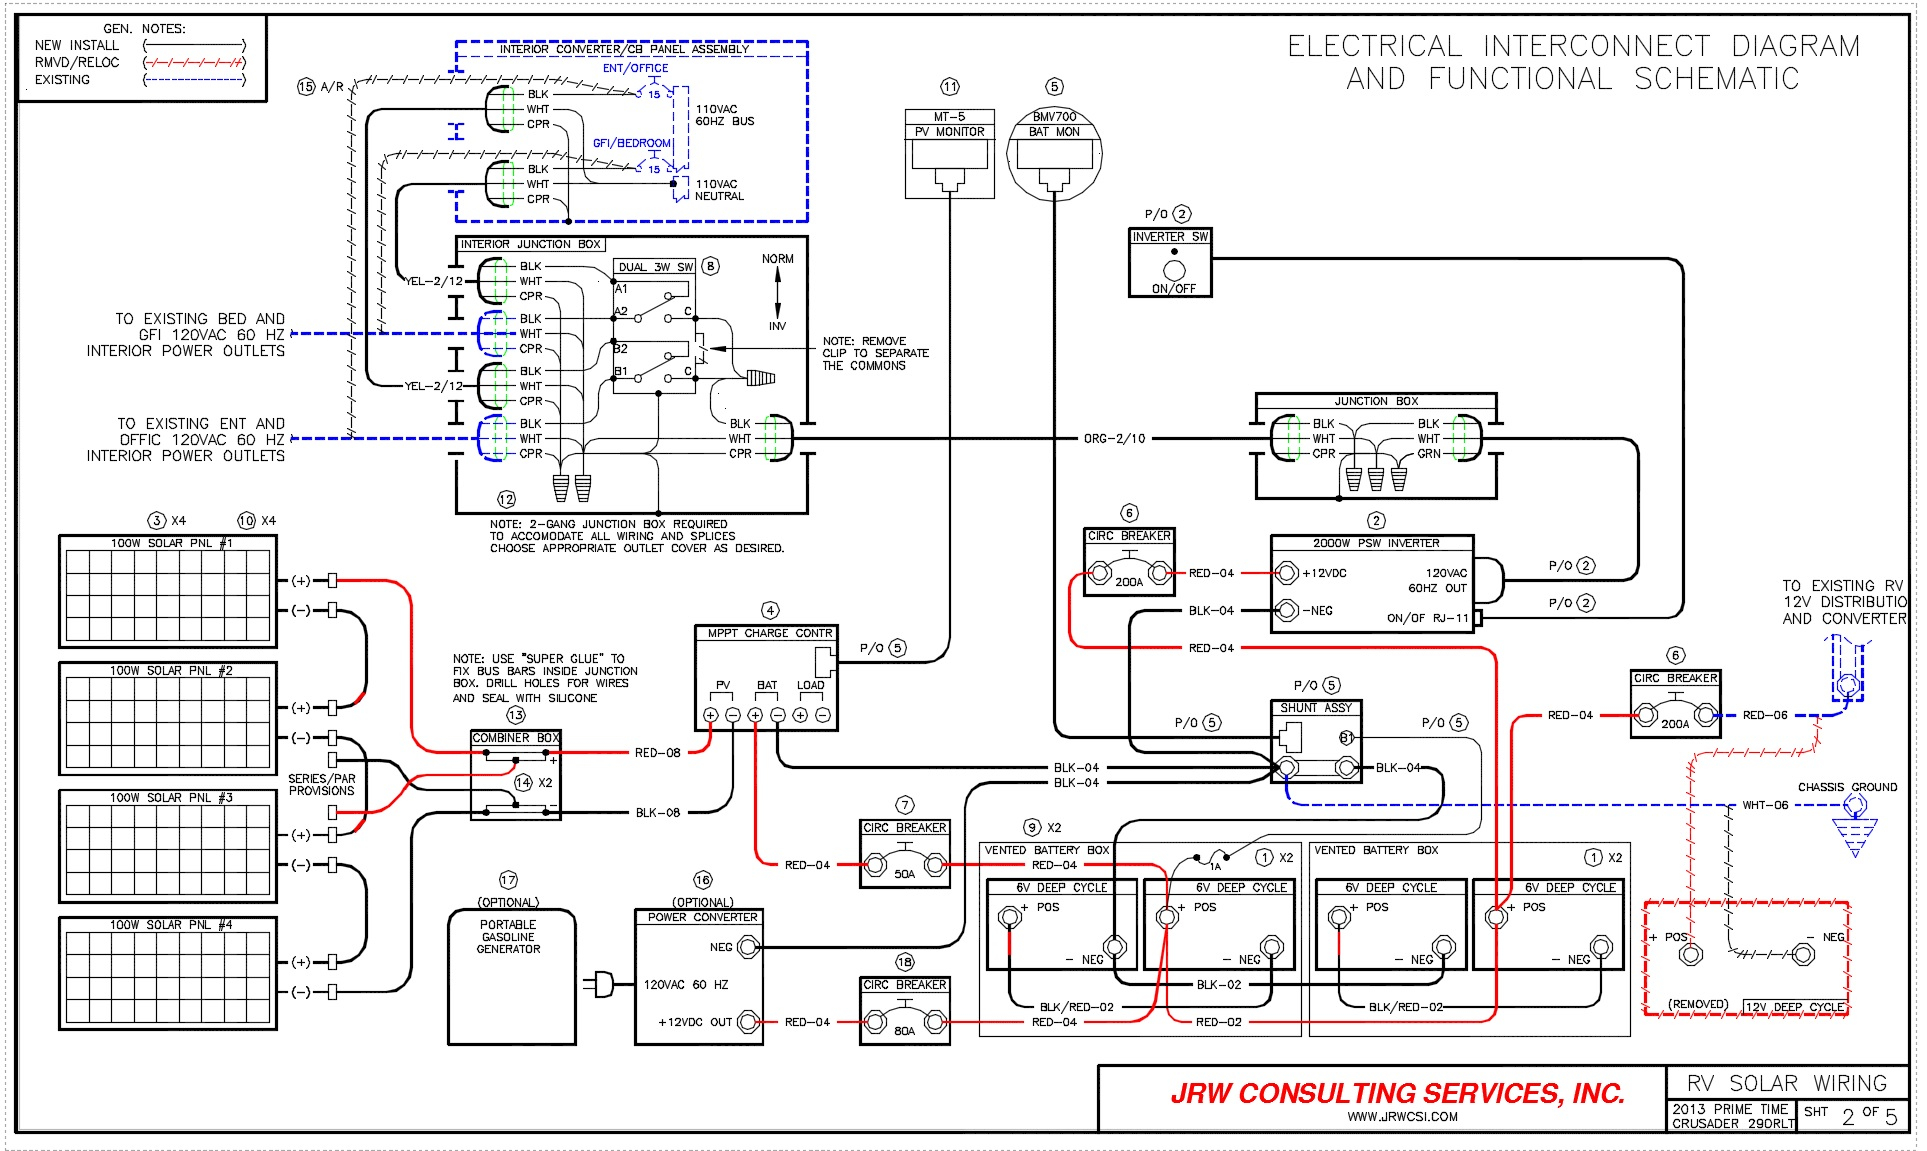 solar panel wiring diagram pdf Collection-Wiring Diagram for solar Panel to Battery Lovely Wiring Diagram Rv Park Free Wiring Diagrams Schematics 13-o